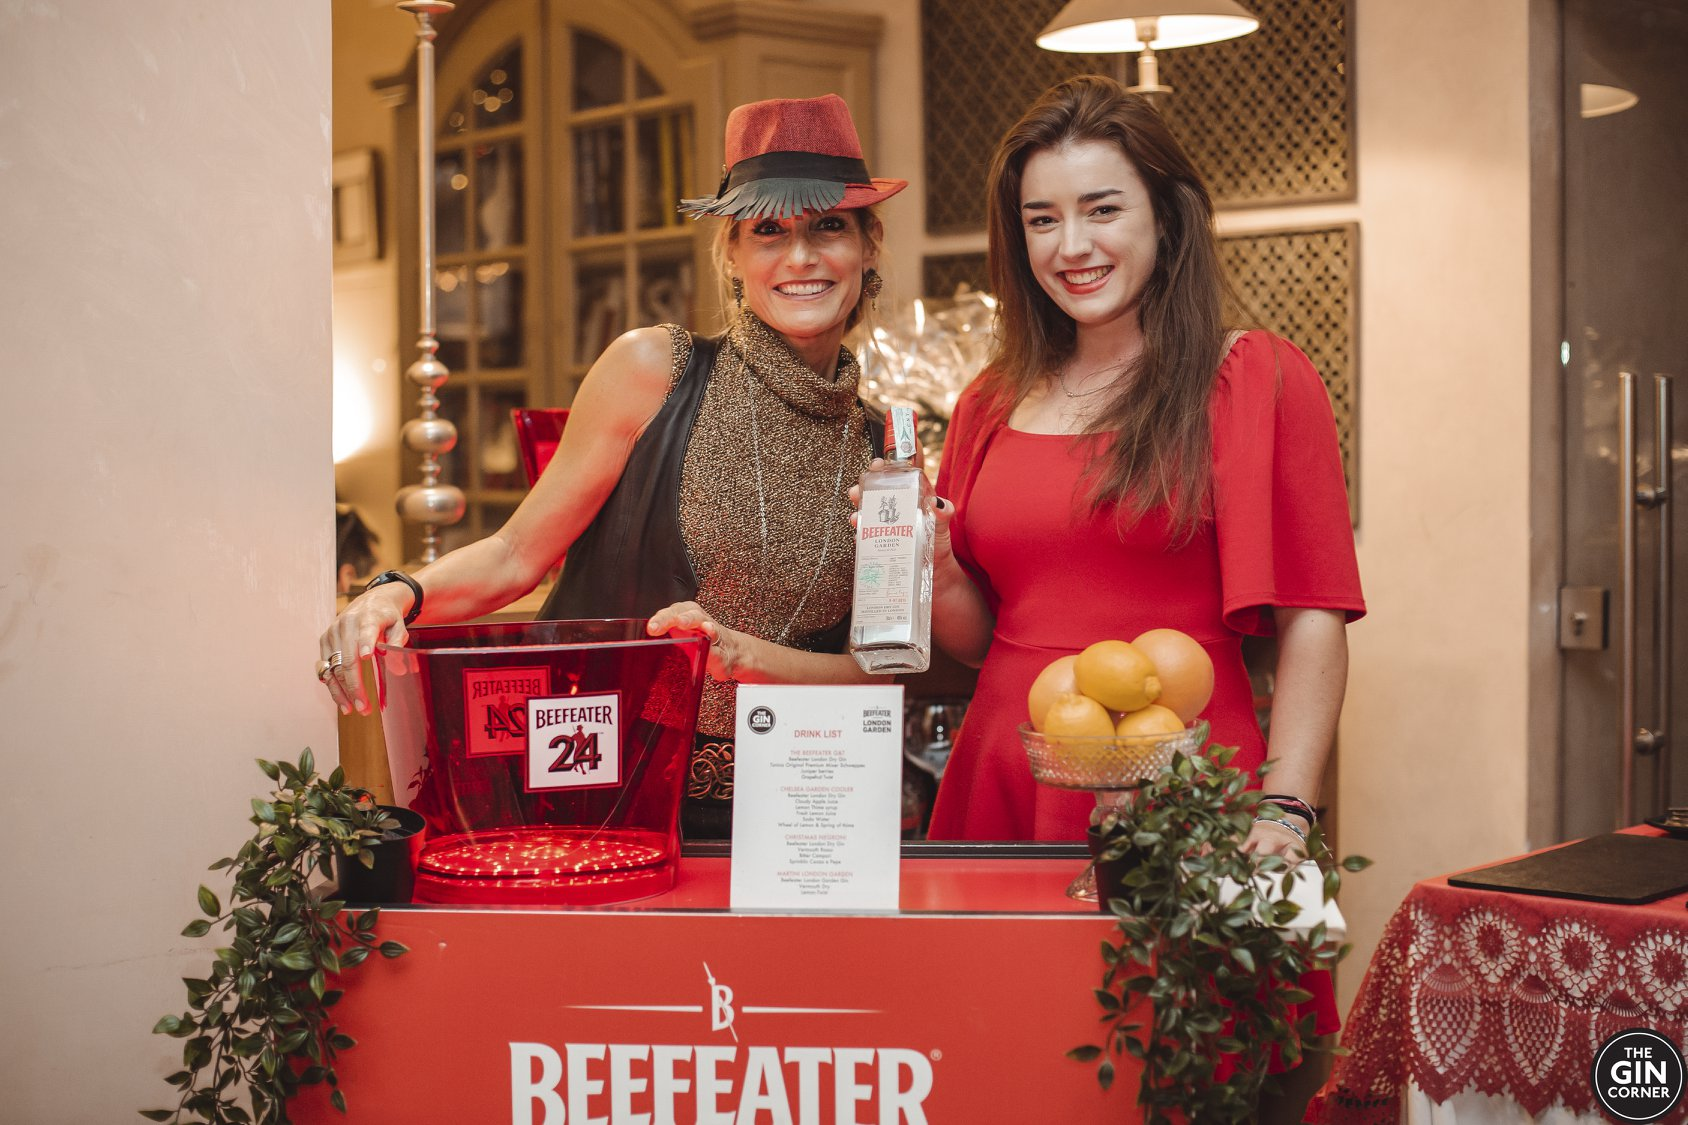 Beefeater & Xmas Time